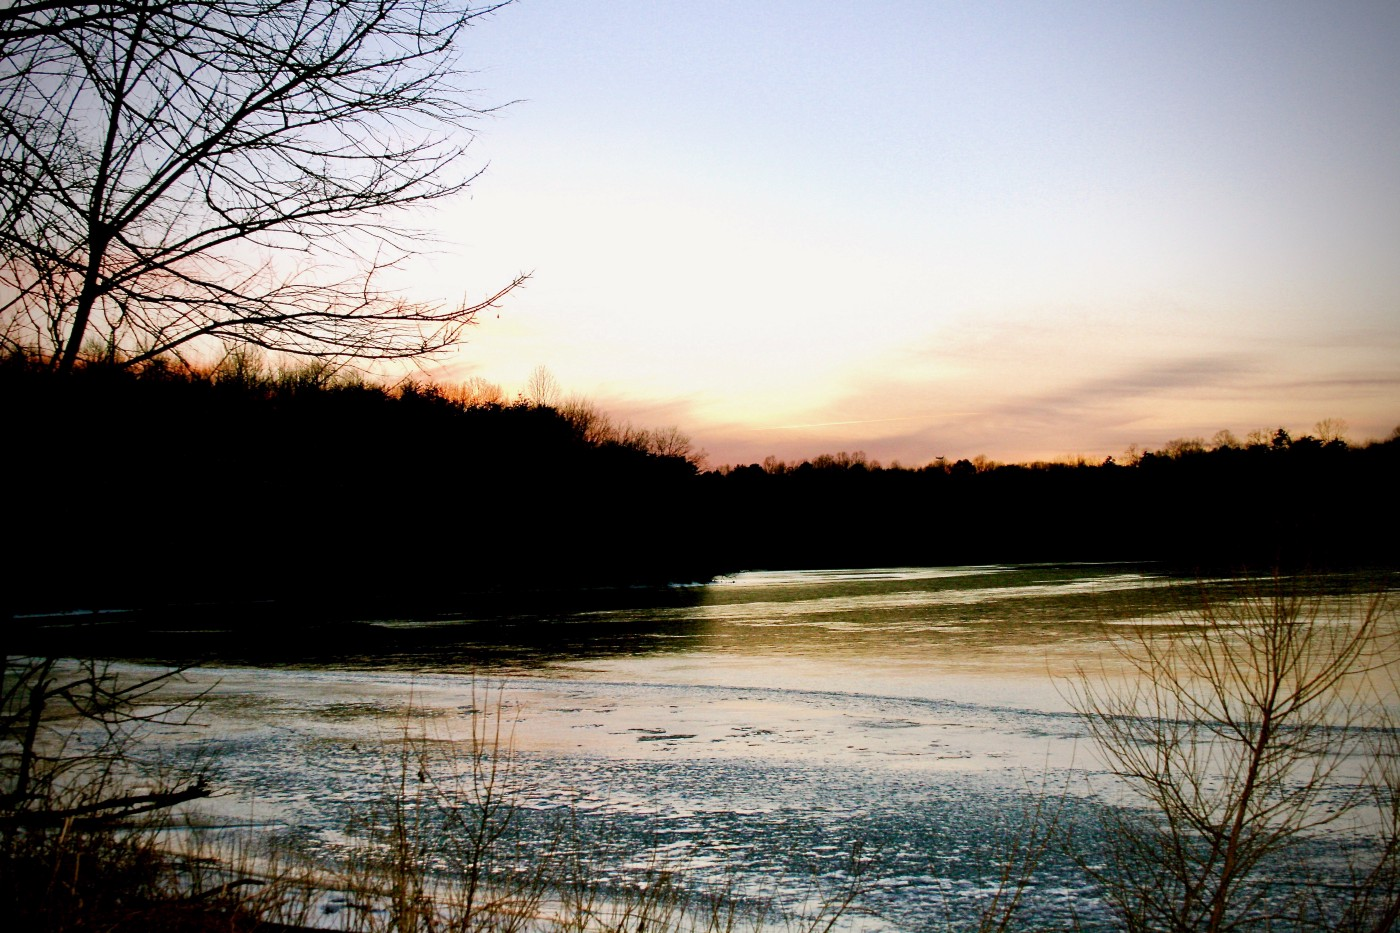 Sunset over frozen lake.